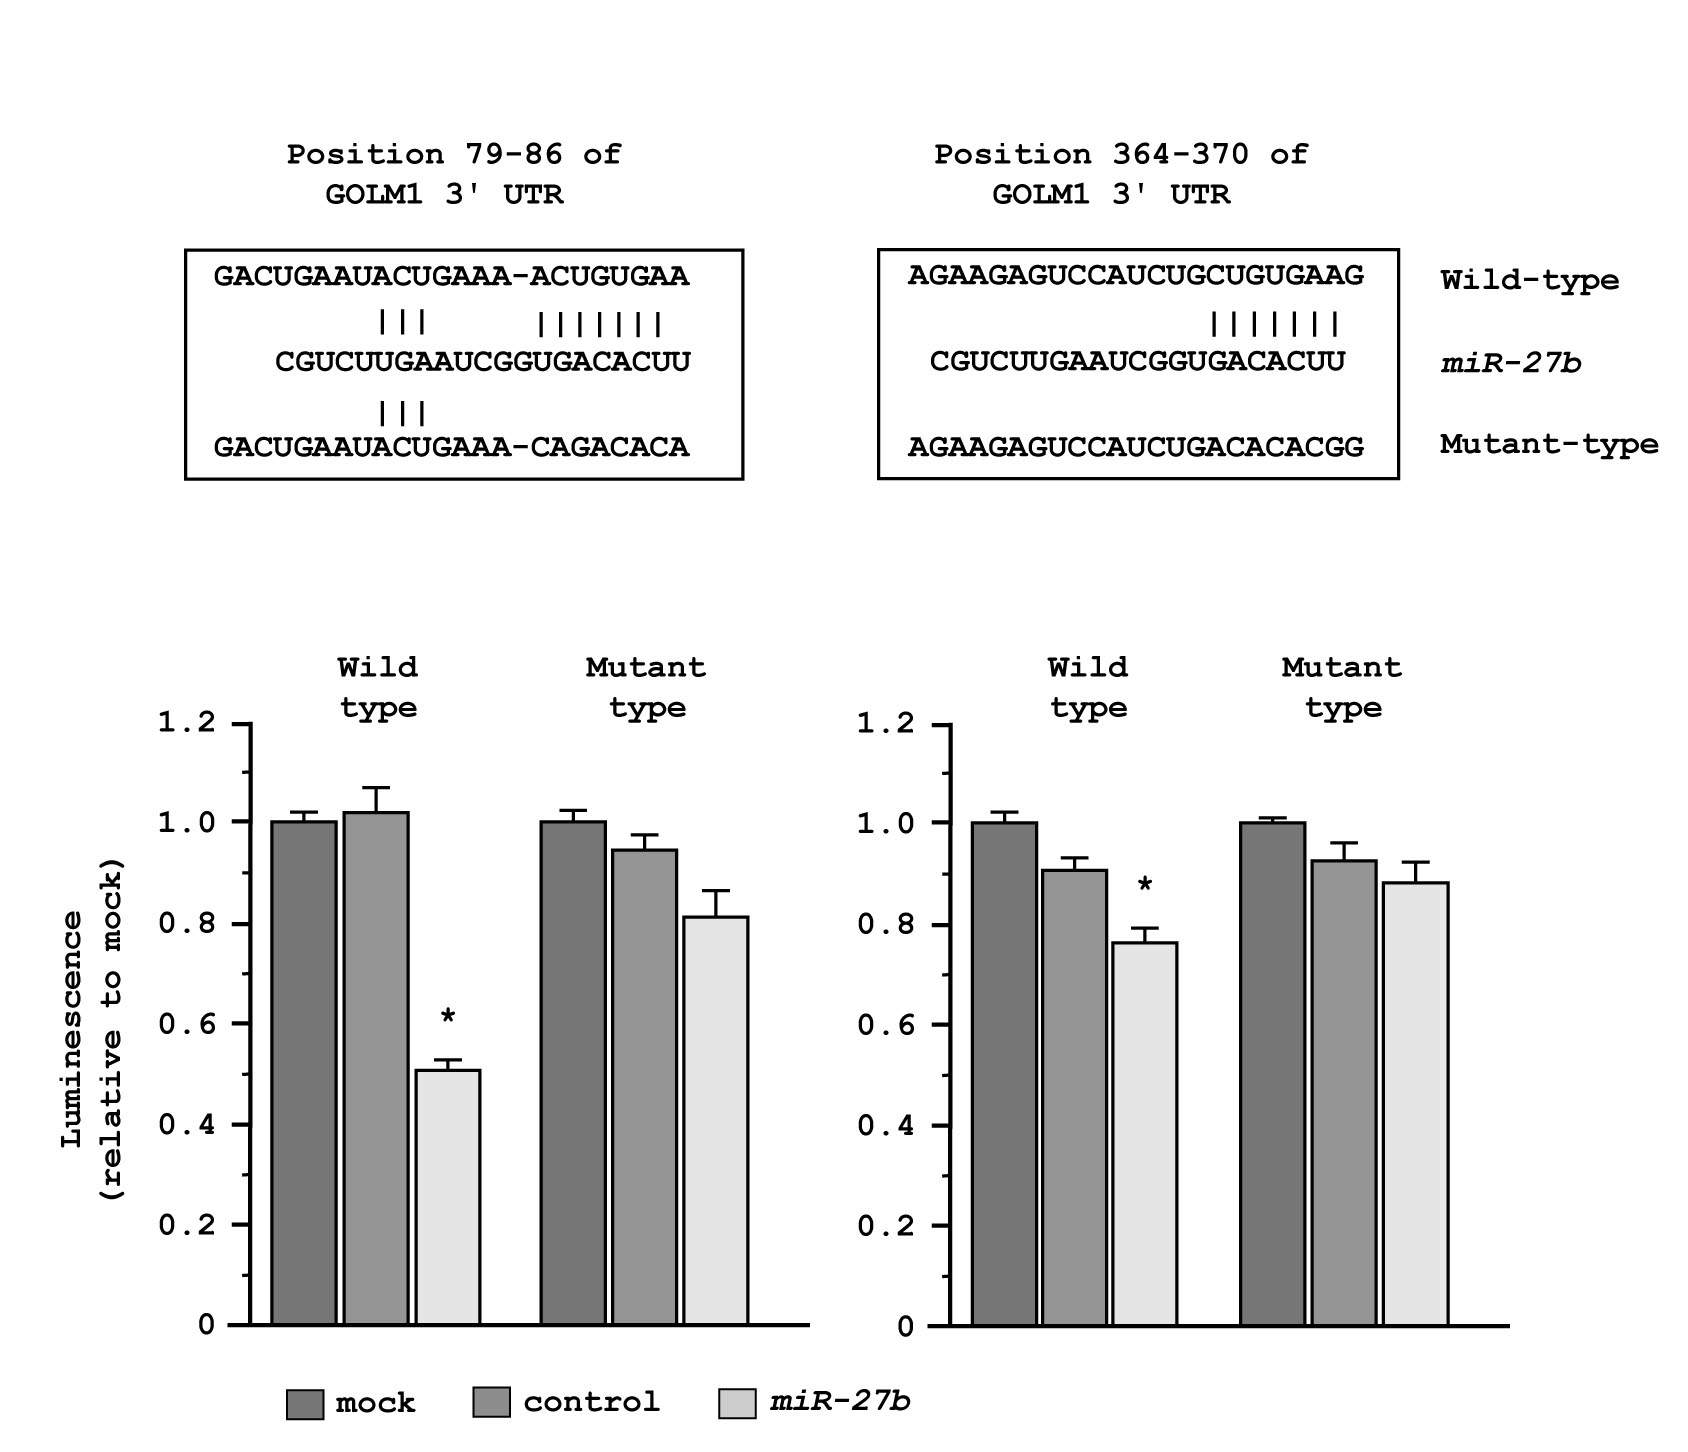 Regulation of GOLM1 expression by